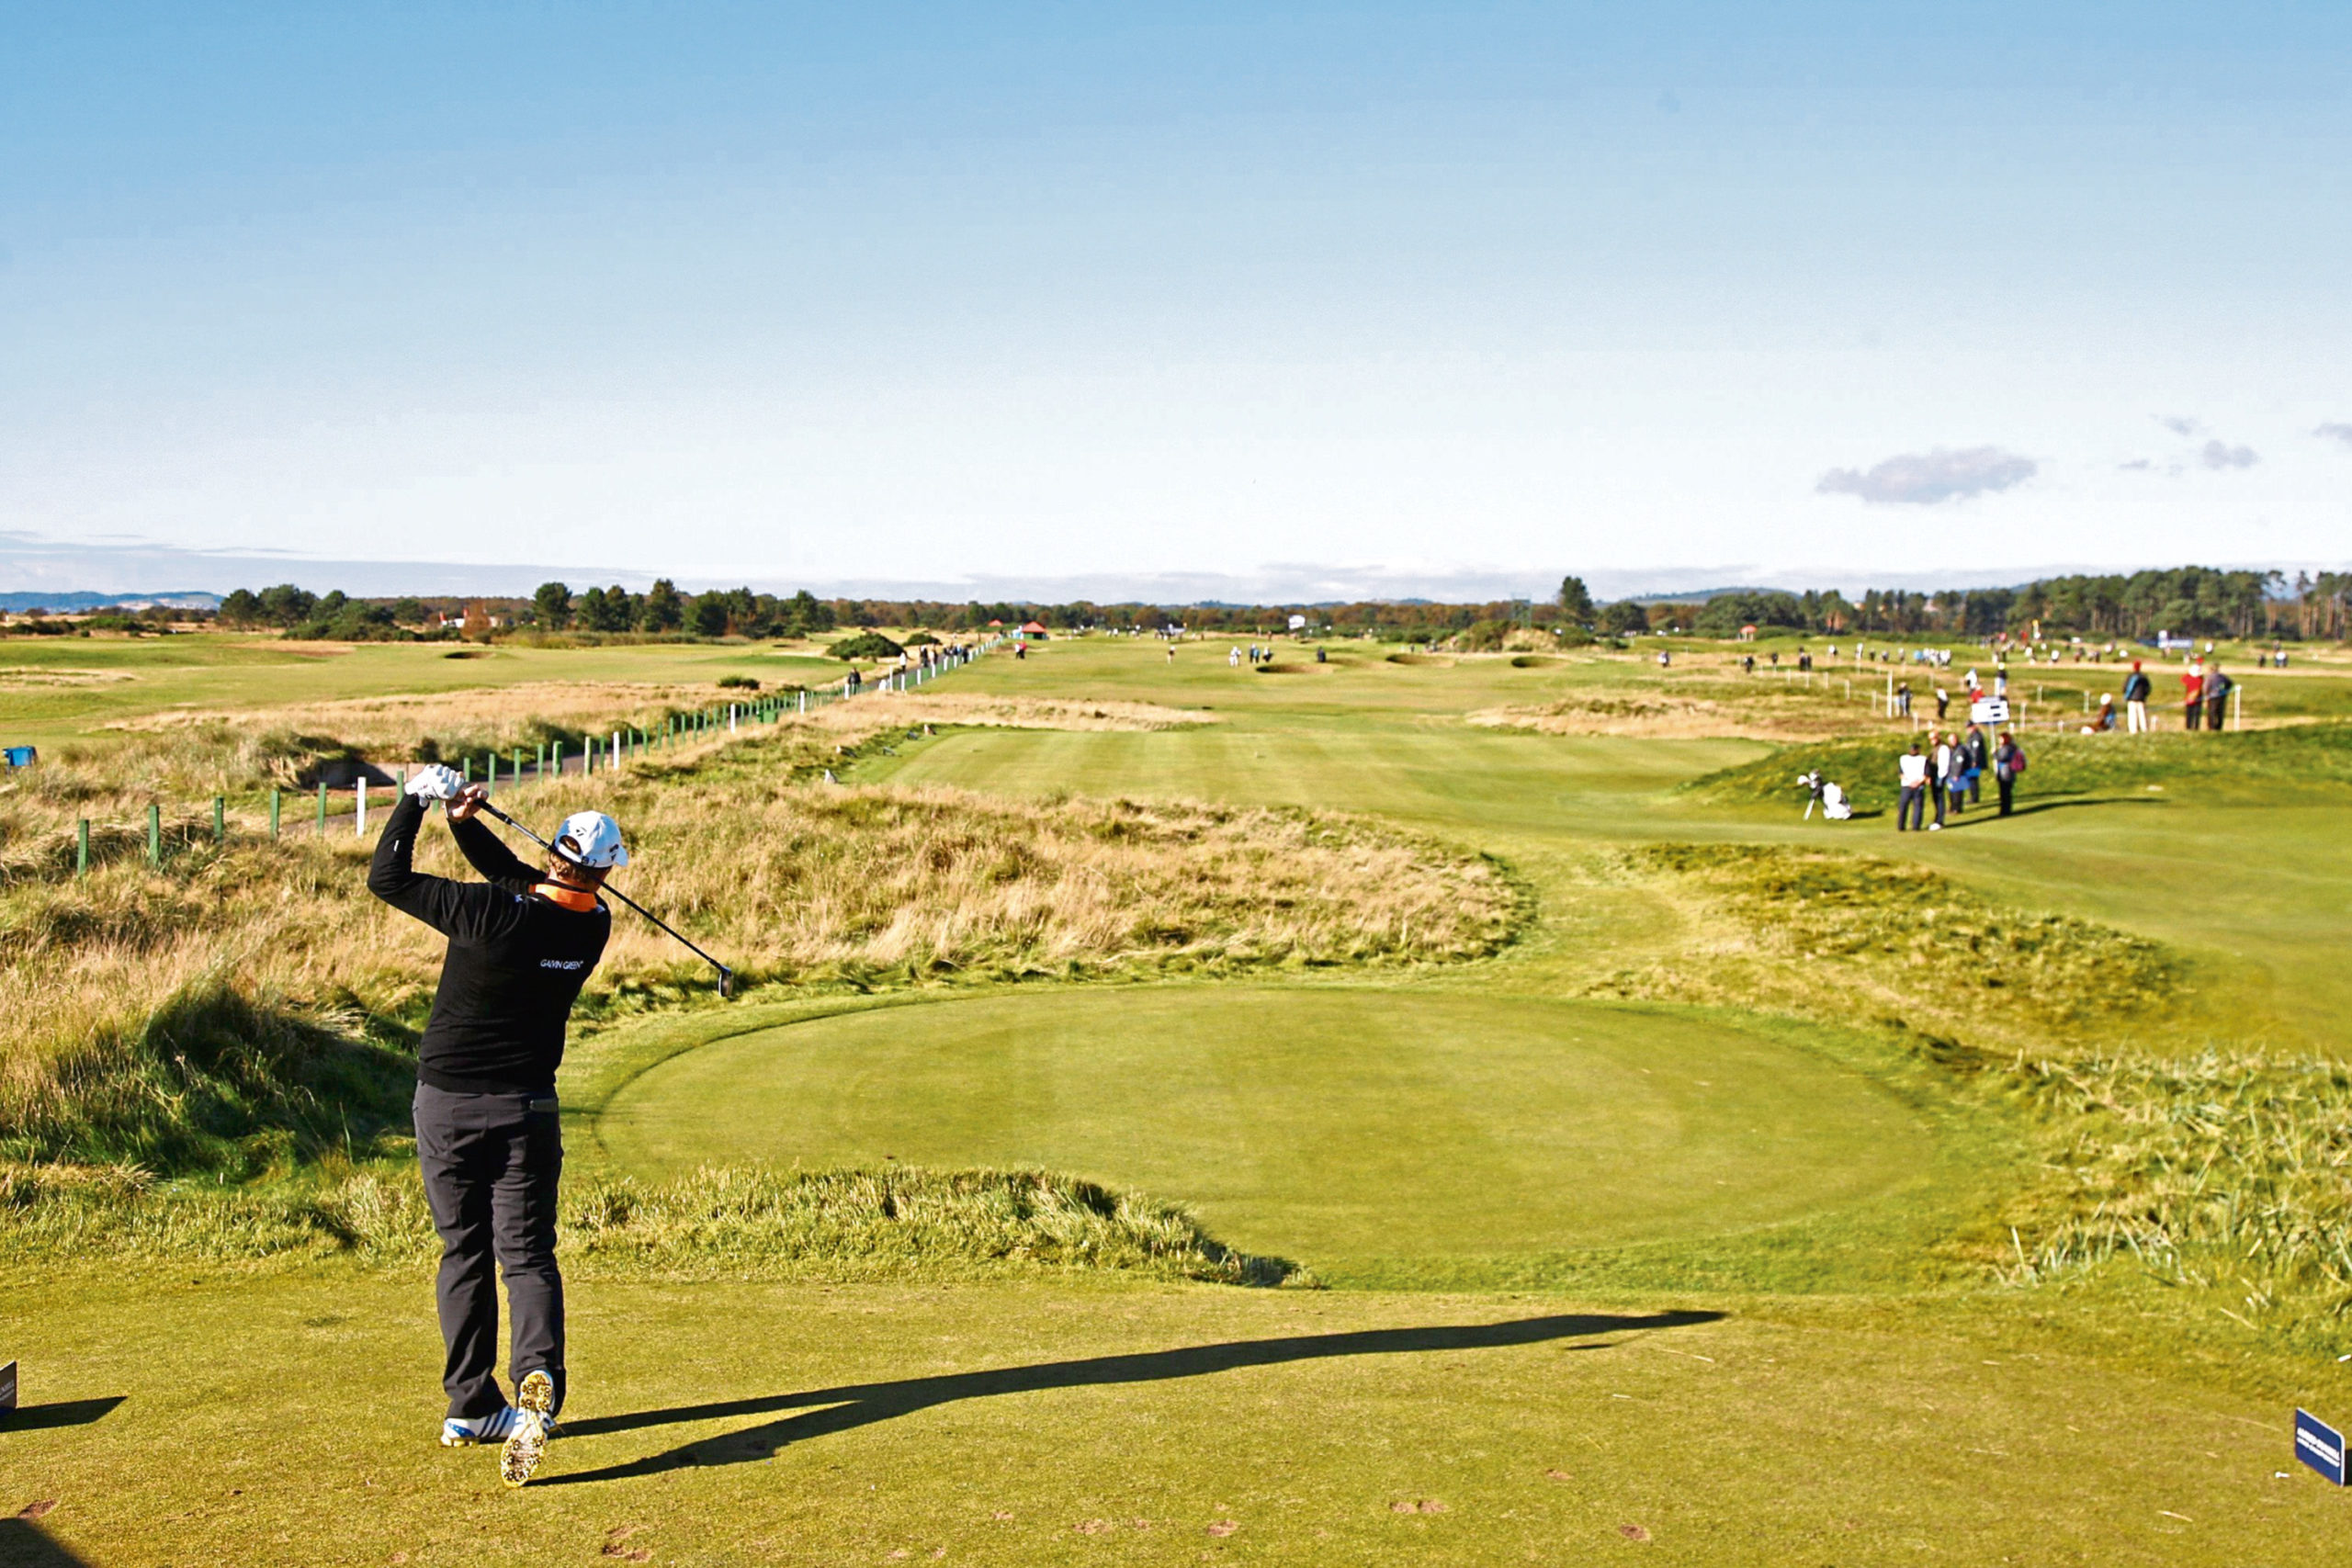 Golf tourism is worth an estimated £270 million to the Scottish economy.